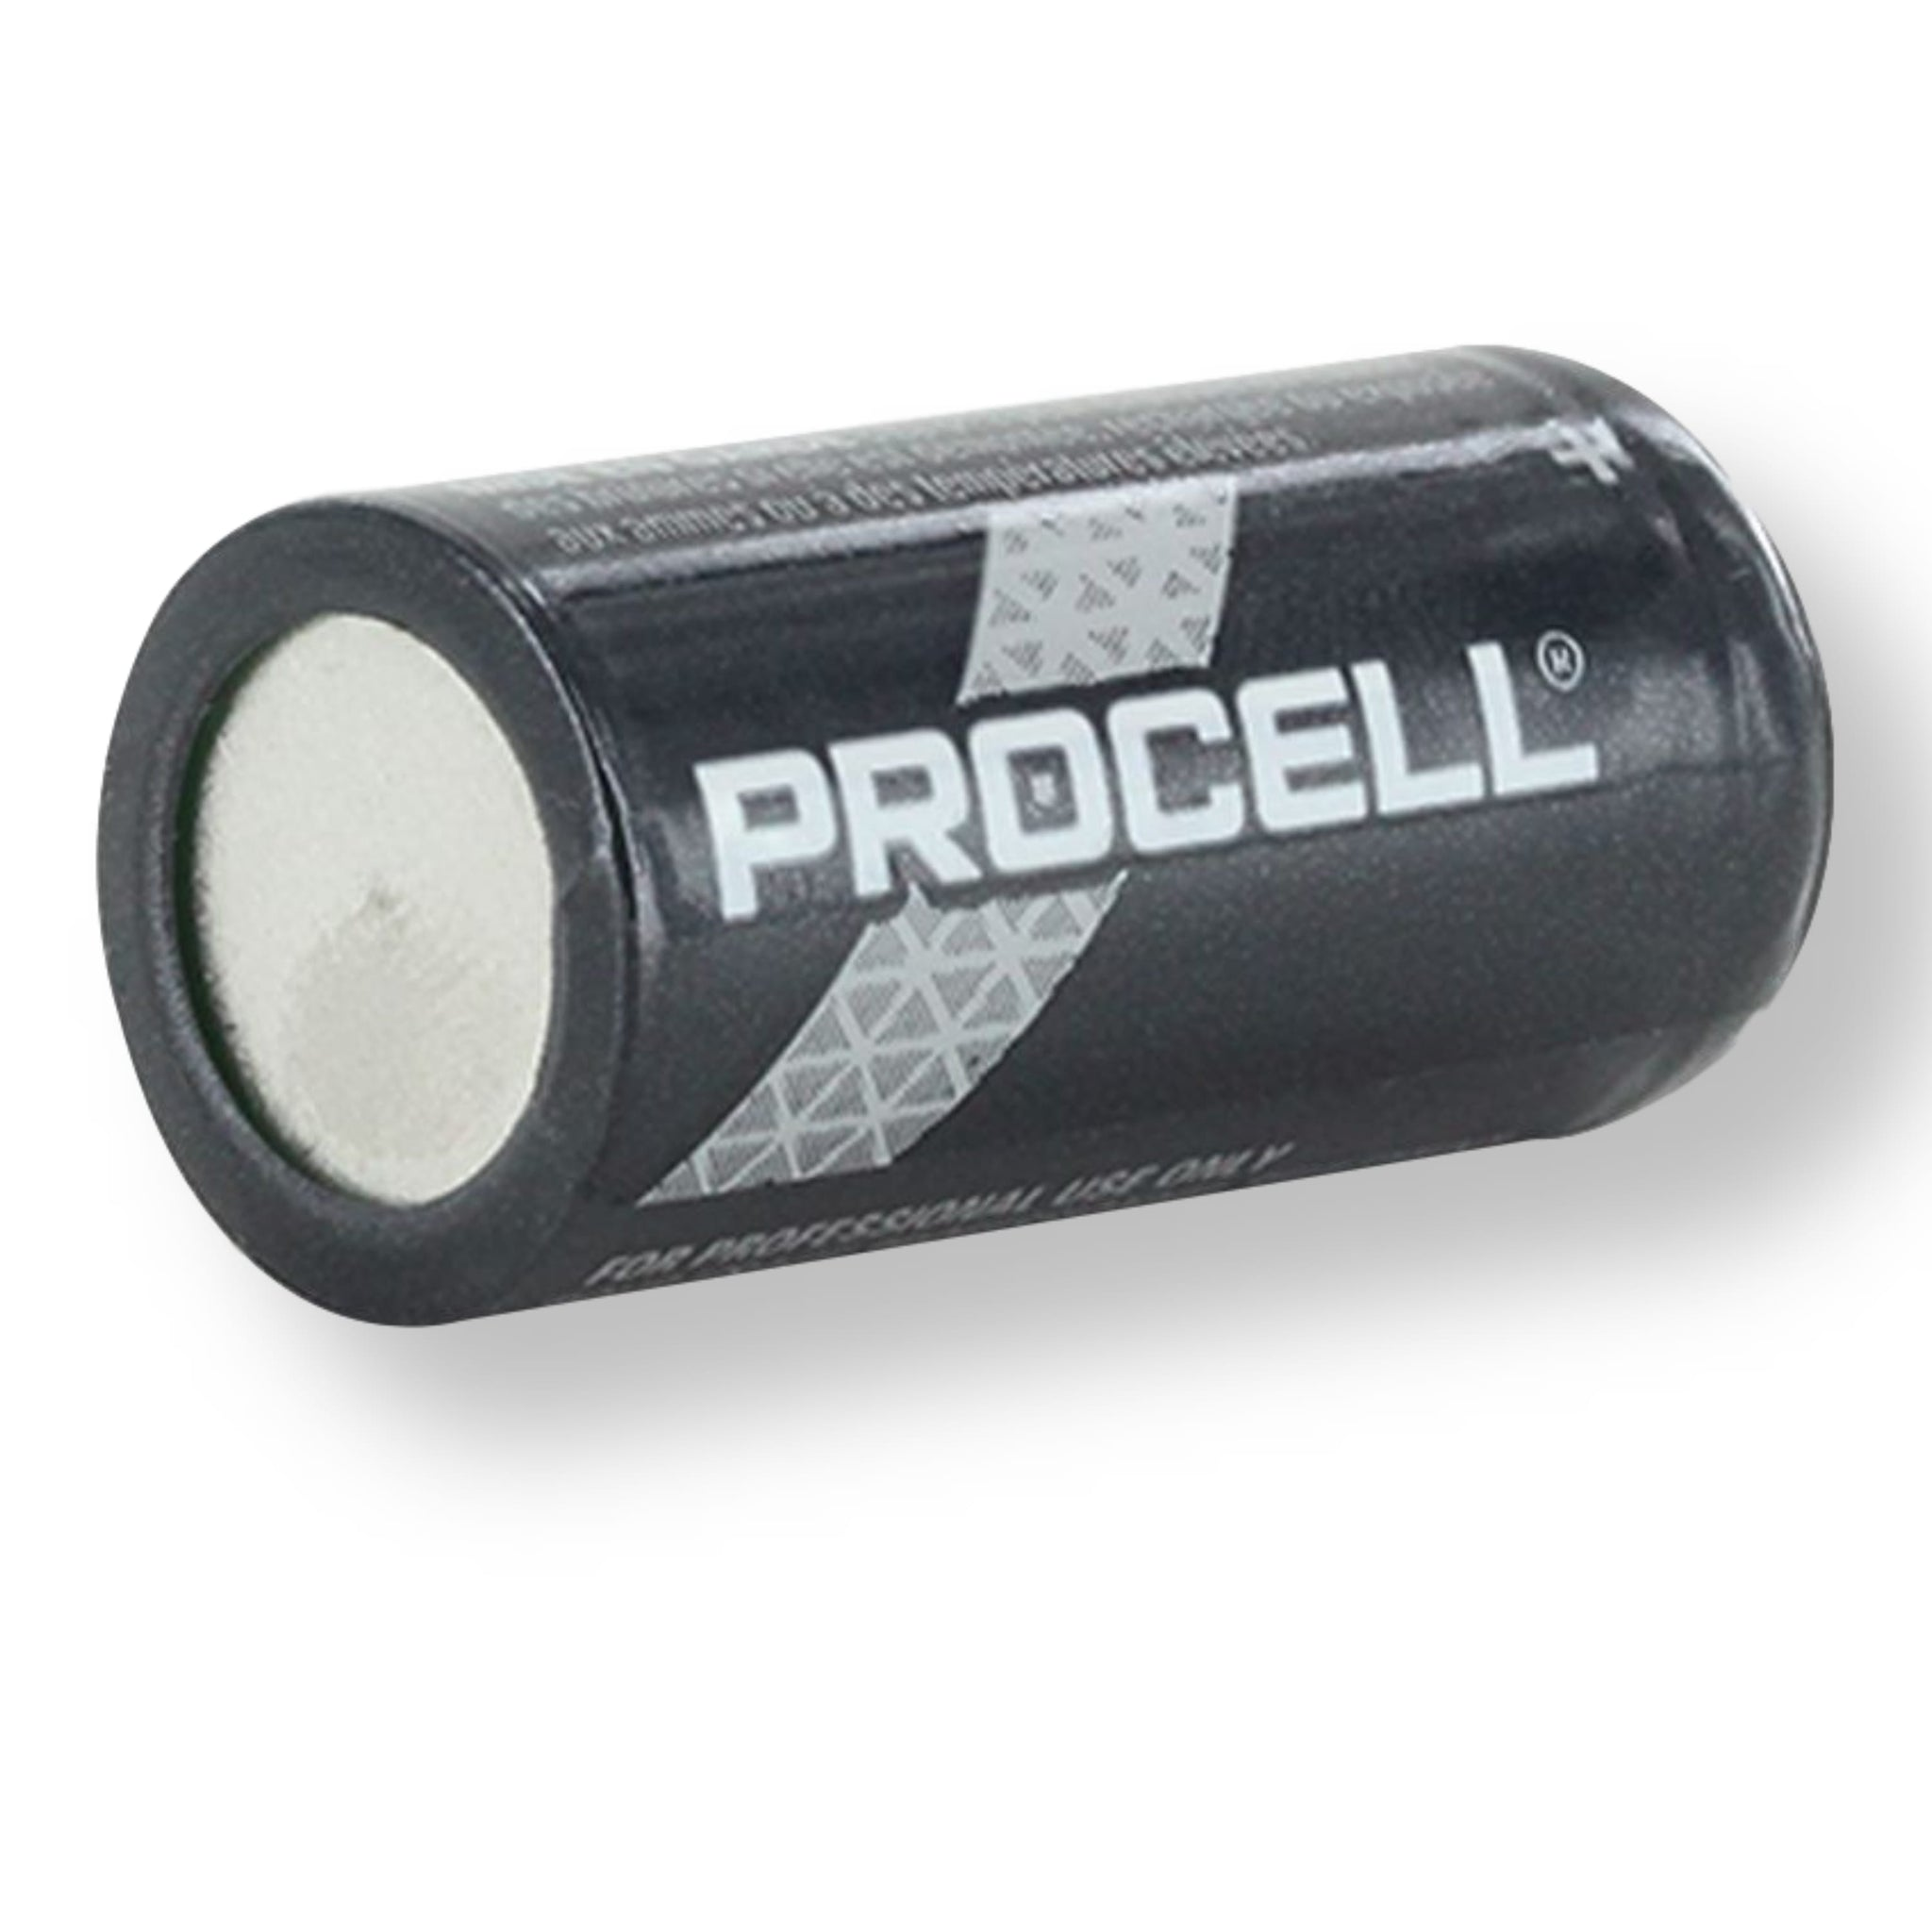 lithium batteries, dl123a for laser pointer, torch battery use